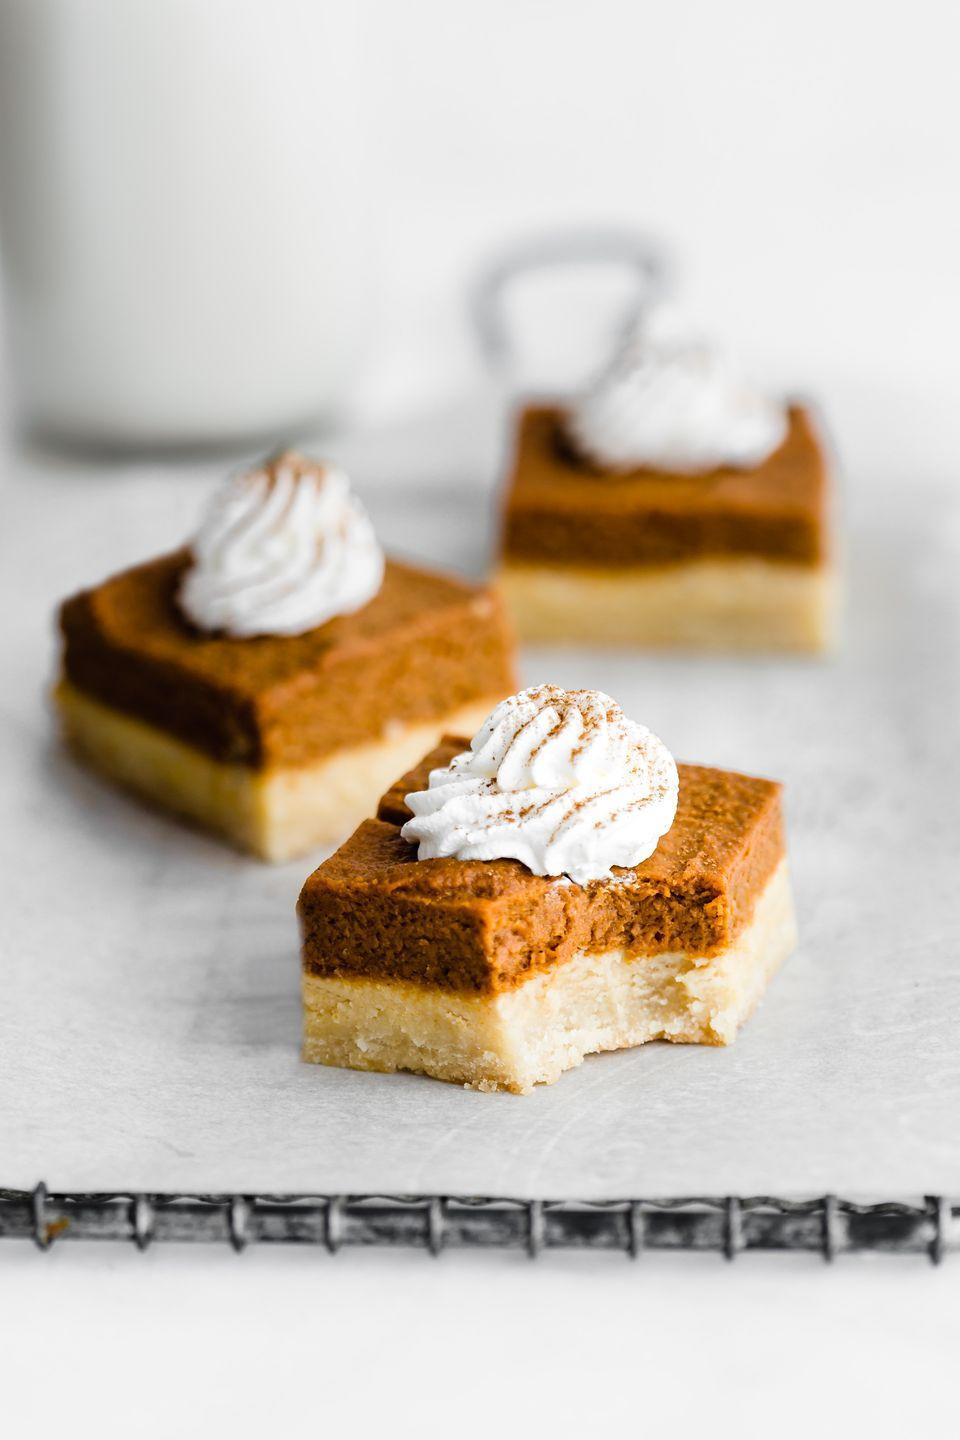 "<p>If your dinner guests prefer to fill their plate with an assortment of sweet treats, opt for these bite-size bars rather than a whole pumpkin pie. Just don't skimp out on the homemade whipped cream!</p><p><a href=""https://choosingchia.com/pumpkin-pie-bars-with-almond-cookie-crust-vegan-paleo/"" rel=""nofollow noopener"" target=""_blank"" data-ylk=""slk:Get the recipe at Choosing Chia »"" class=""link rapid-noclick-resp"">Get the recipe at Choosing Chia »</a></p>"